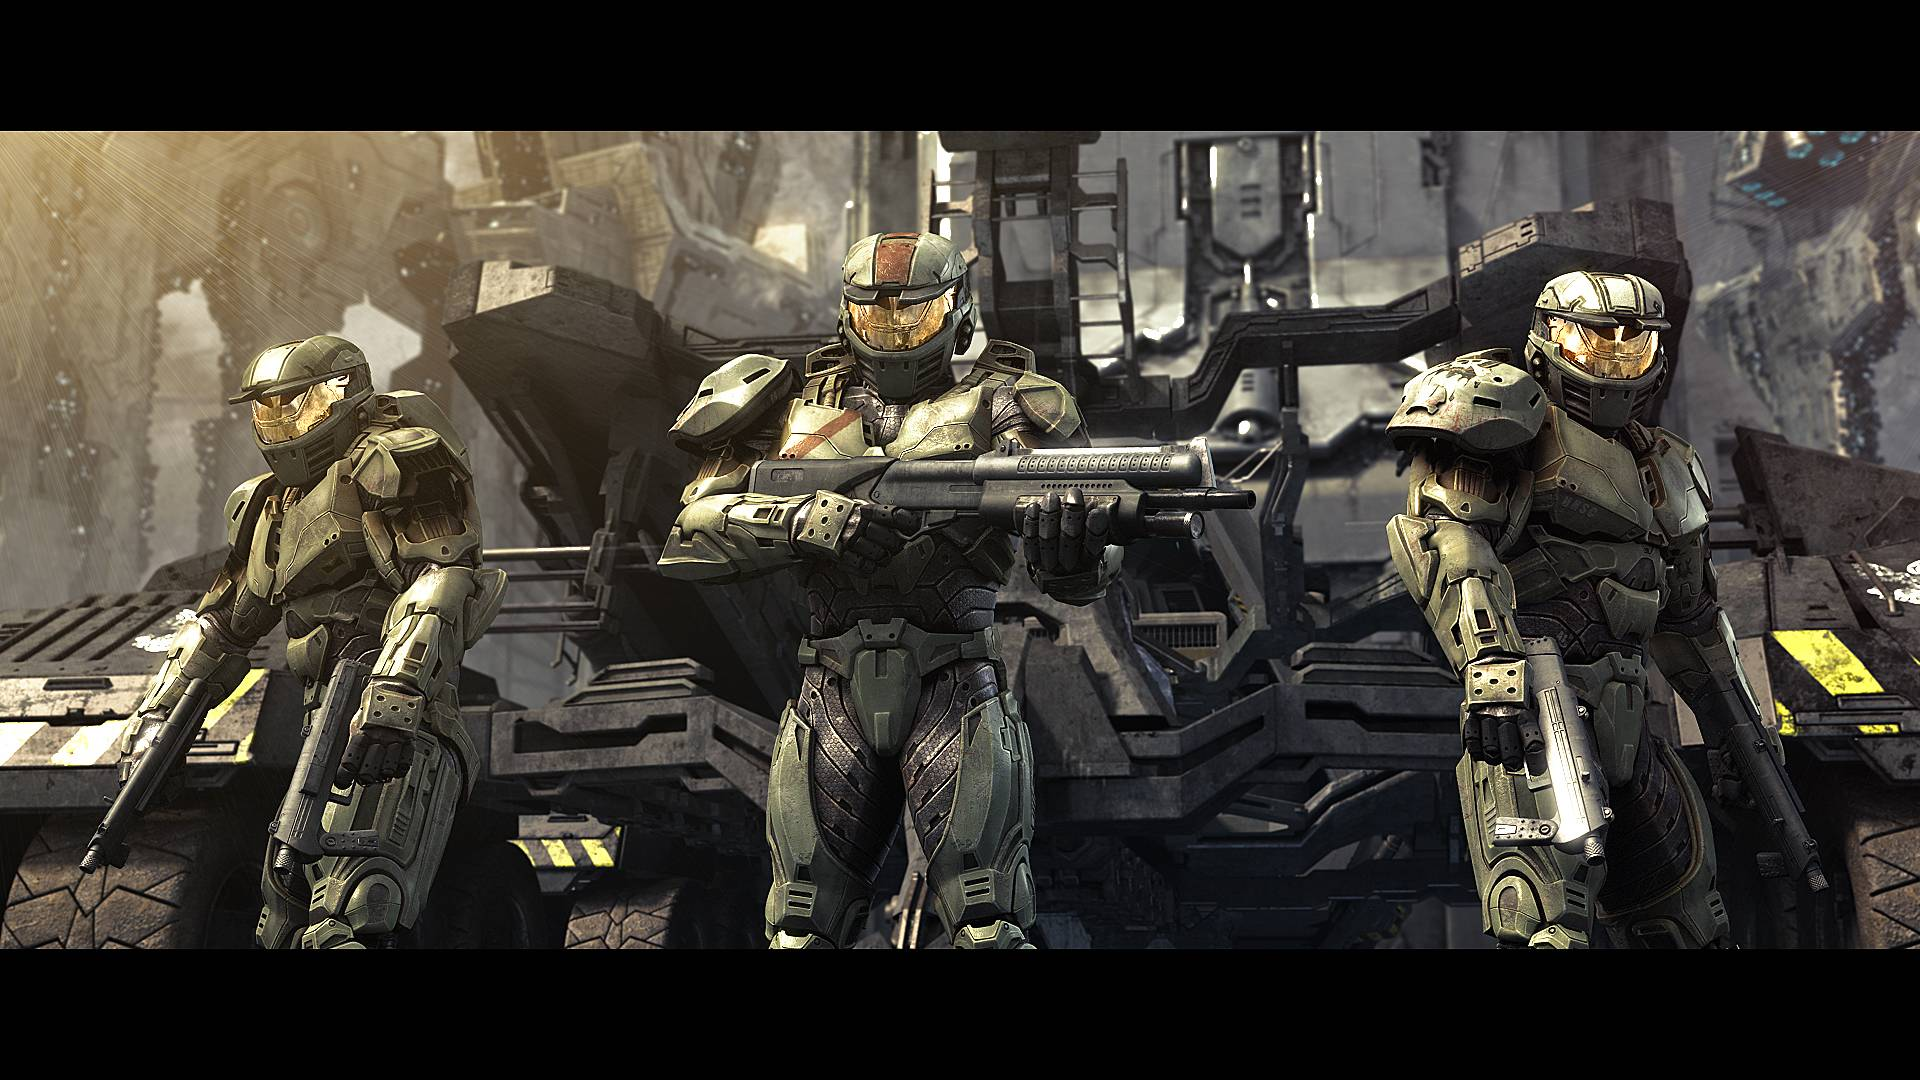 Wallpapers For Halo Spartan Wallpaper